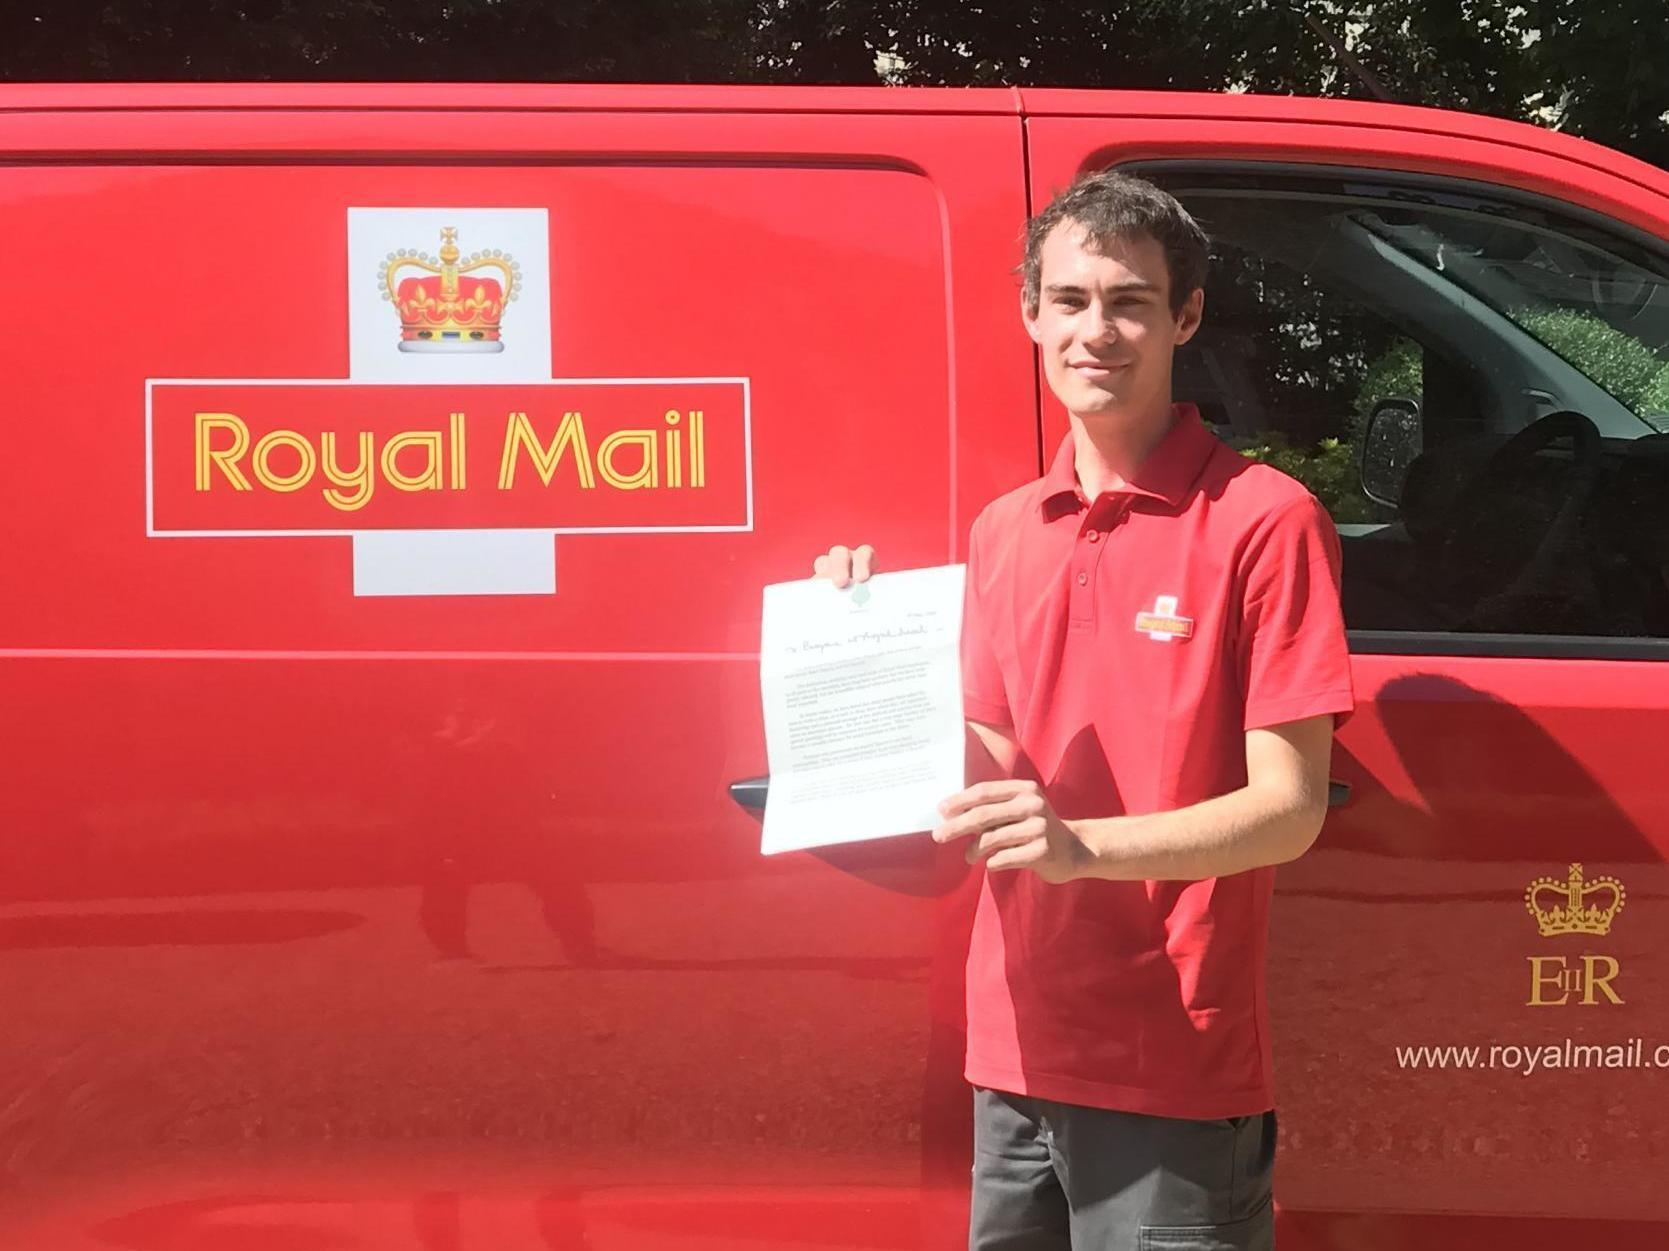 Coronavirus: Prince Charles and Duchess of Cornwall send 'heartfelt thanks' to UK postal workers in letter